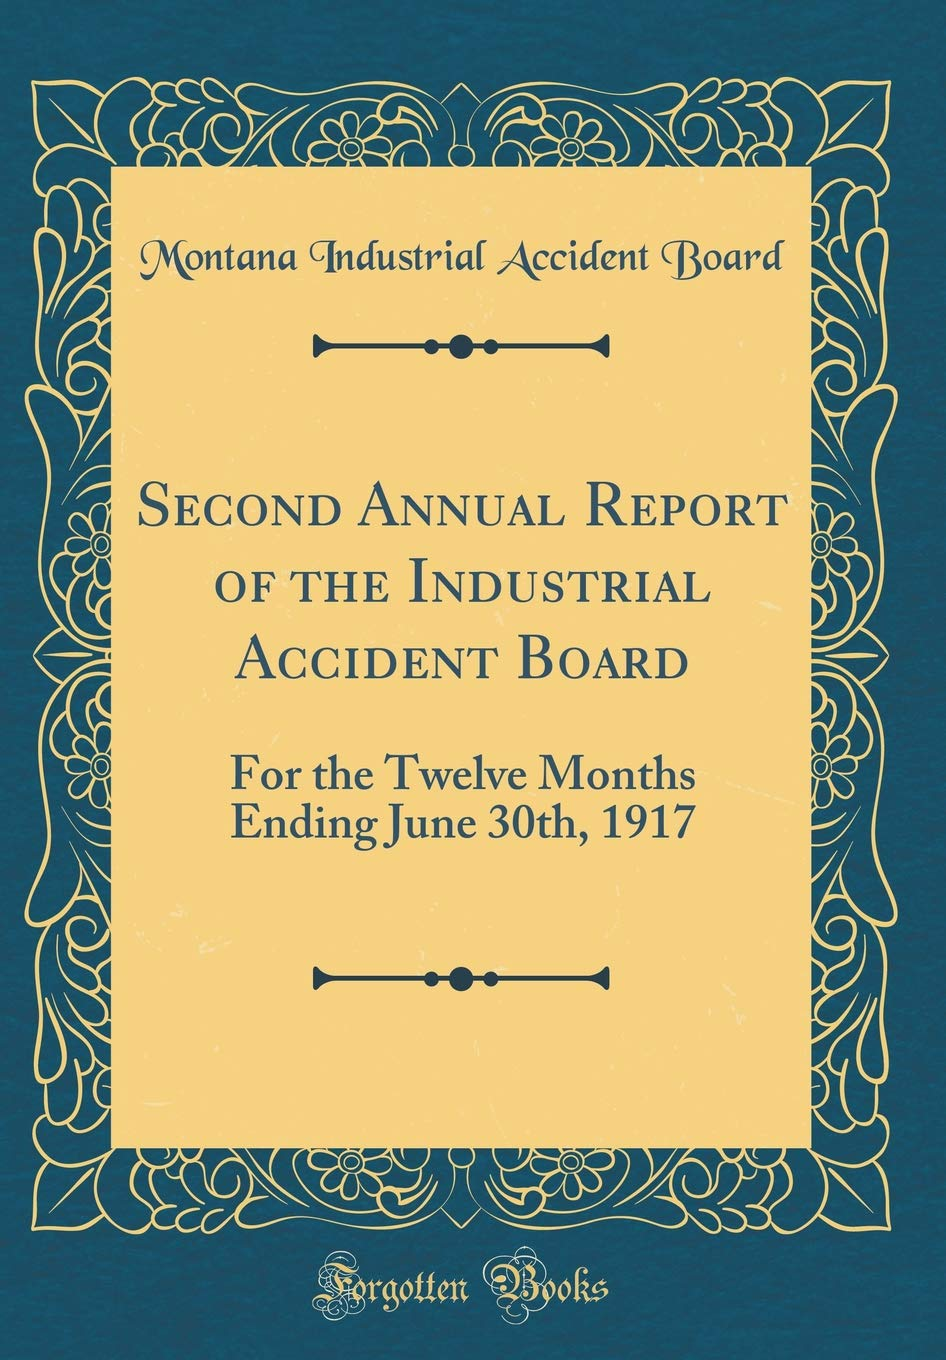 Read Online Second Annual Report of the Industrial Accident Board: For the Twelve Months Ending June 30th, 1917 (Classic Reprint) PDF